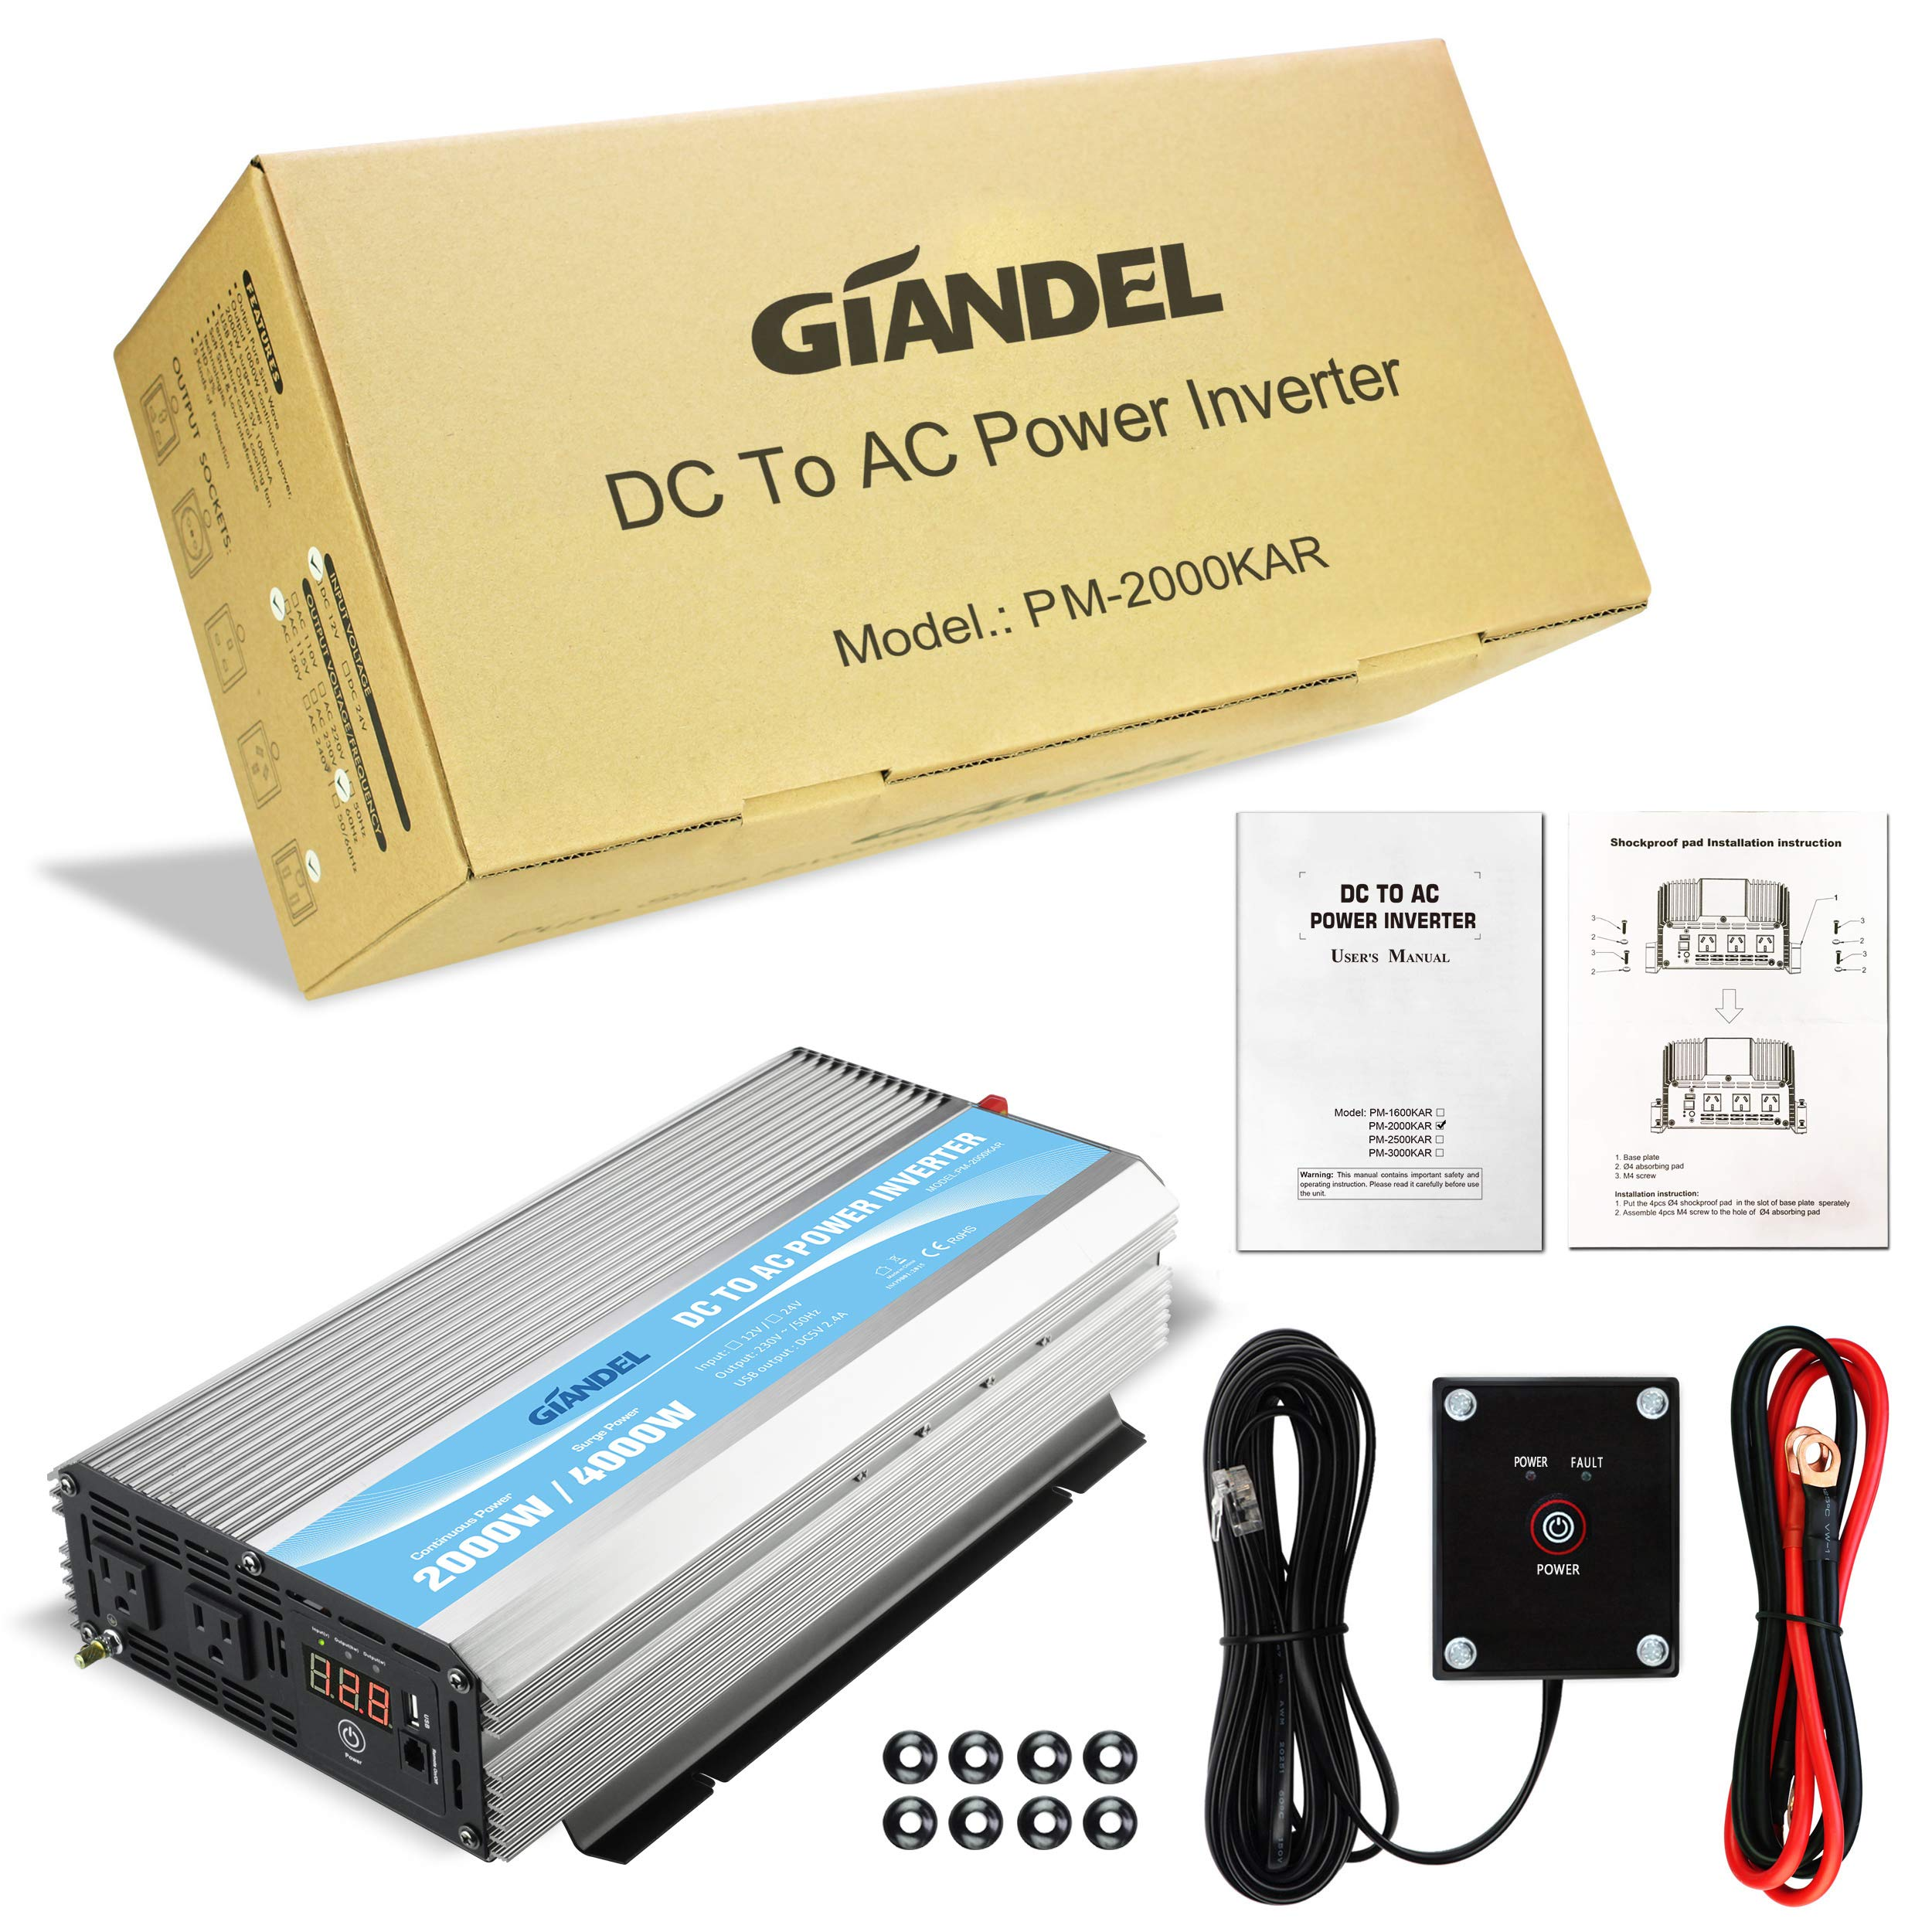 GIANDEL 2000W Power Inverter 12V DC to 110V 120V AC with Remote Control and LED Display Dual AC Outlets & USB Port for RV Truck Boat by Giandel (Image #6)